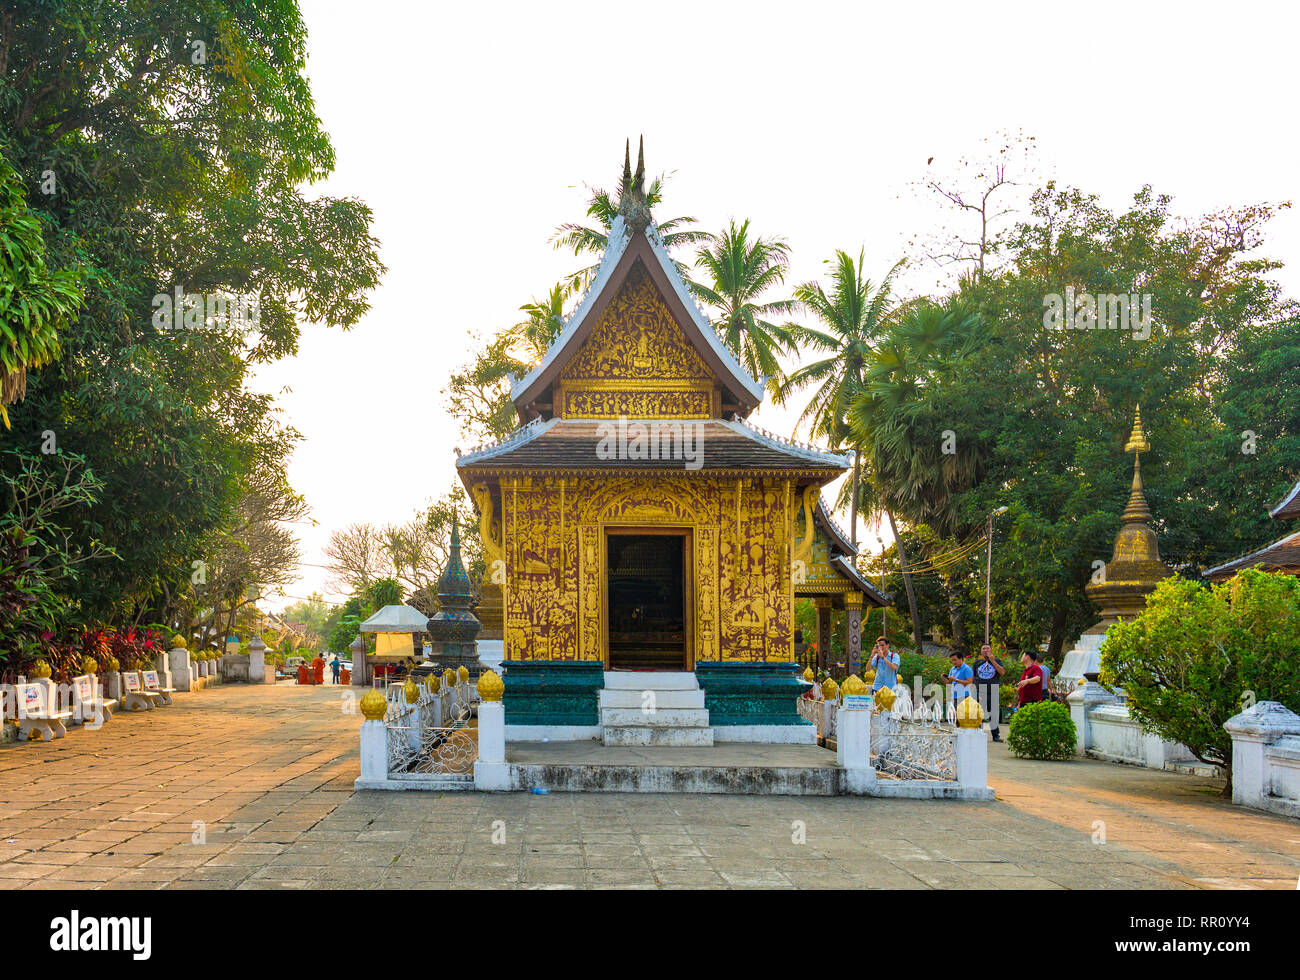 LUANG PRABANG - LAOS - 11 FEBRUARY 2019 Some tourists are walking and taking photos at the beautiful Wat Xieng Thong (Golden City Temple) at sunset in Stock Photo